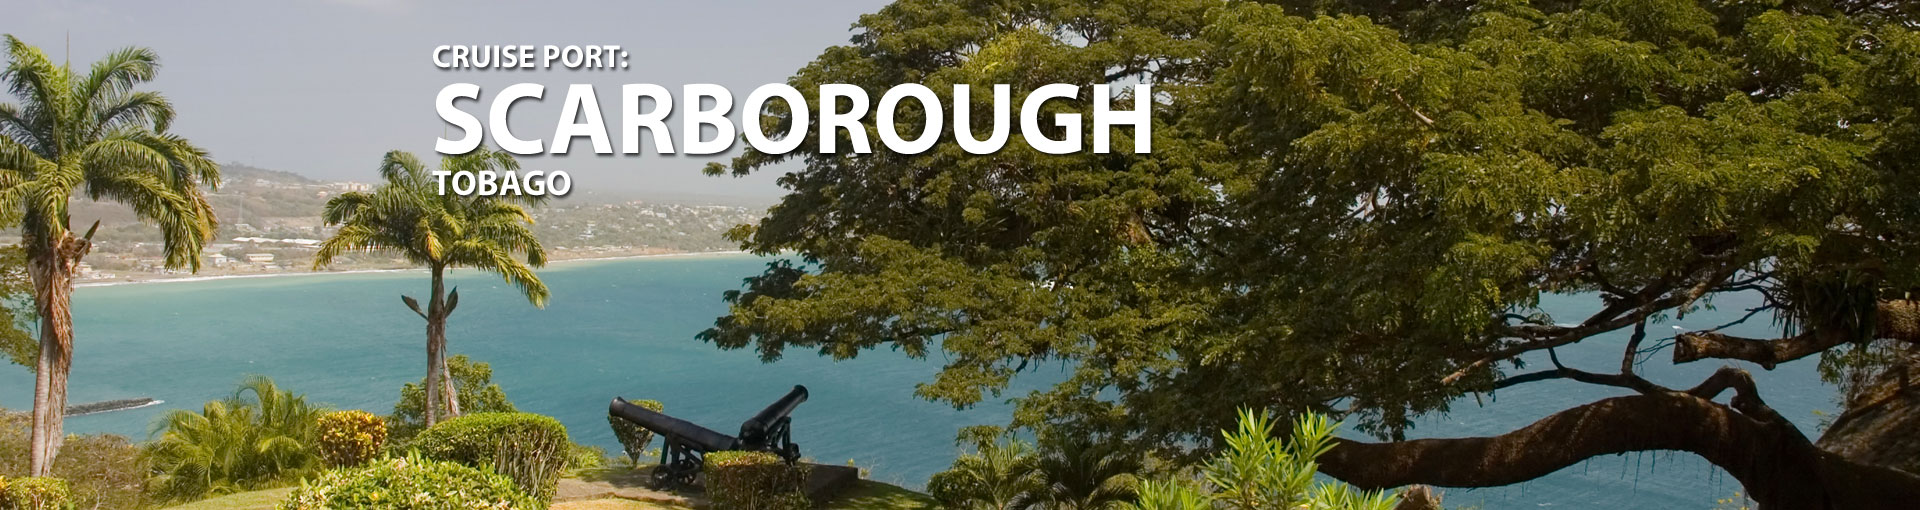 Cruises to Scarborough, Tobago